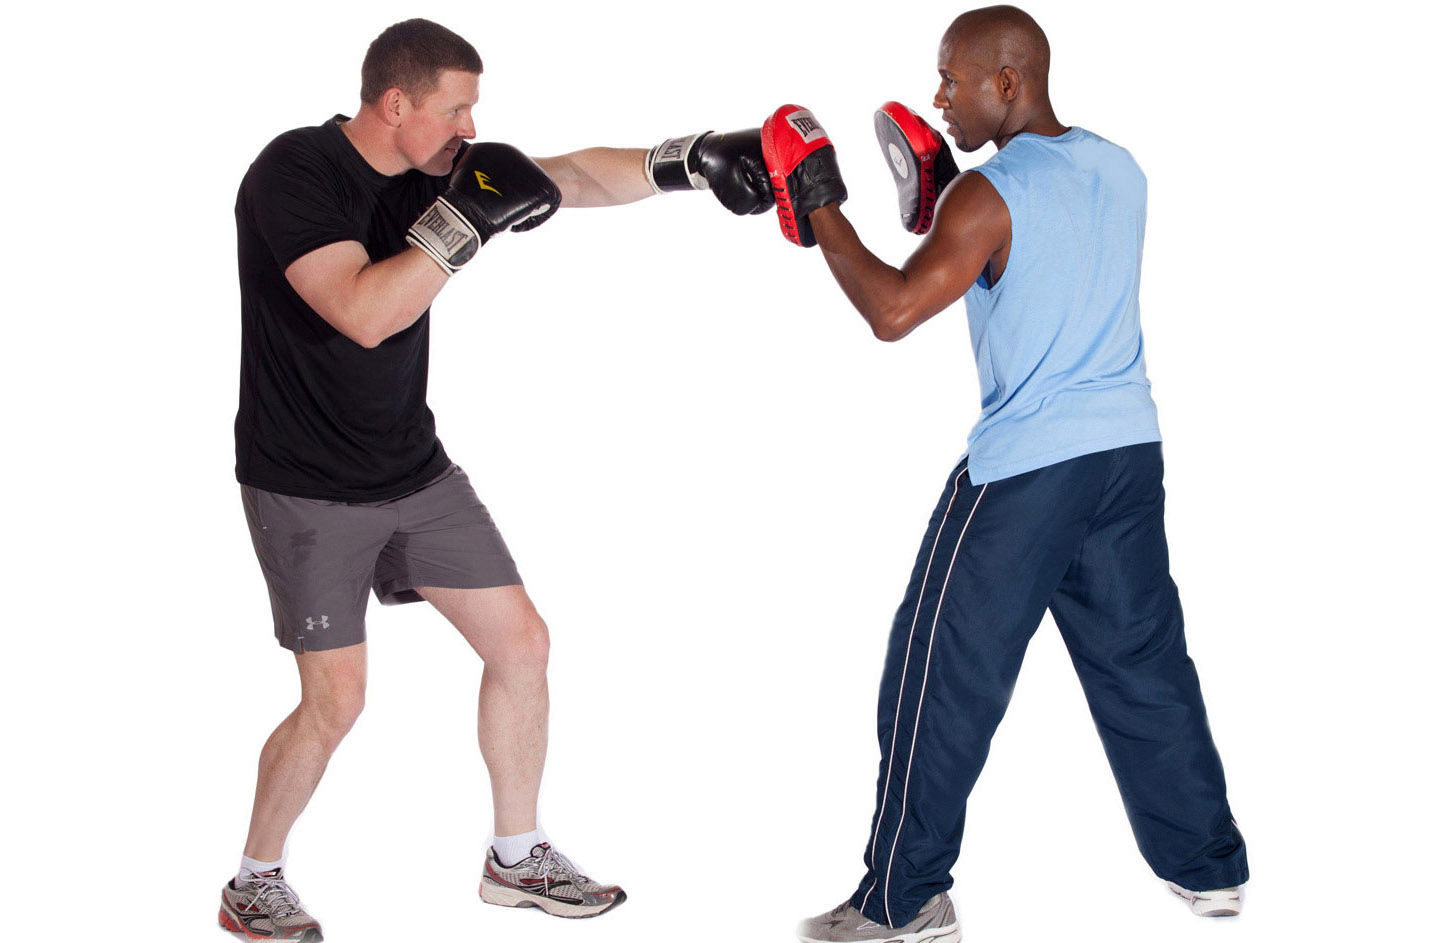 michael-flanagan-40-below-fitness-boxing-with-personal-fitness-client-male-web.jpg